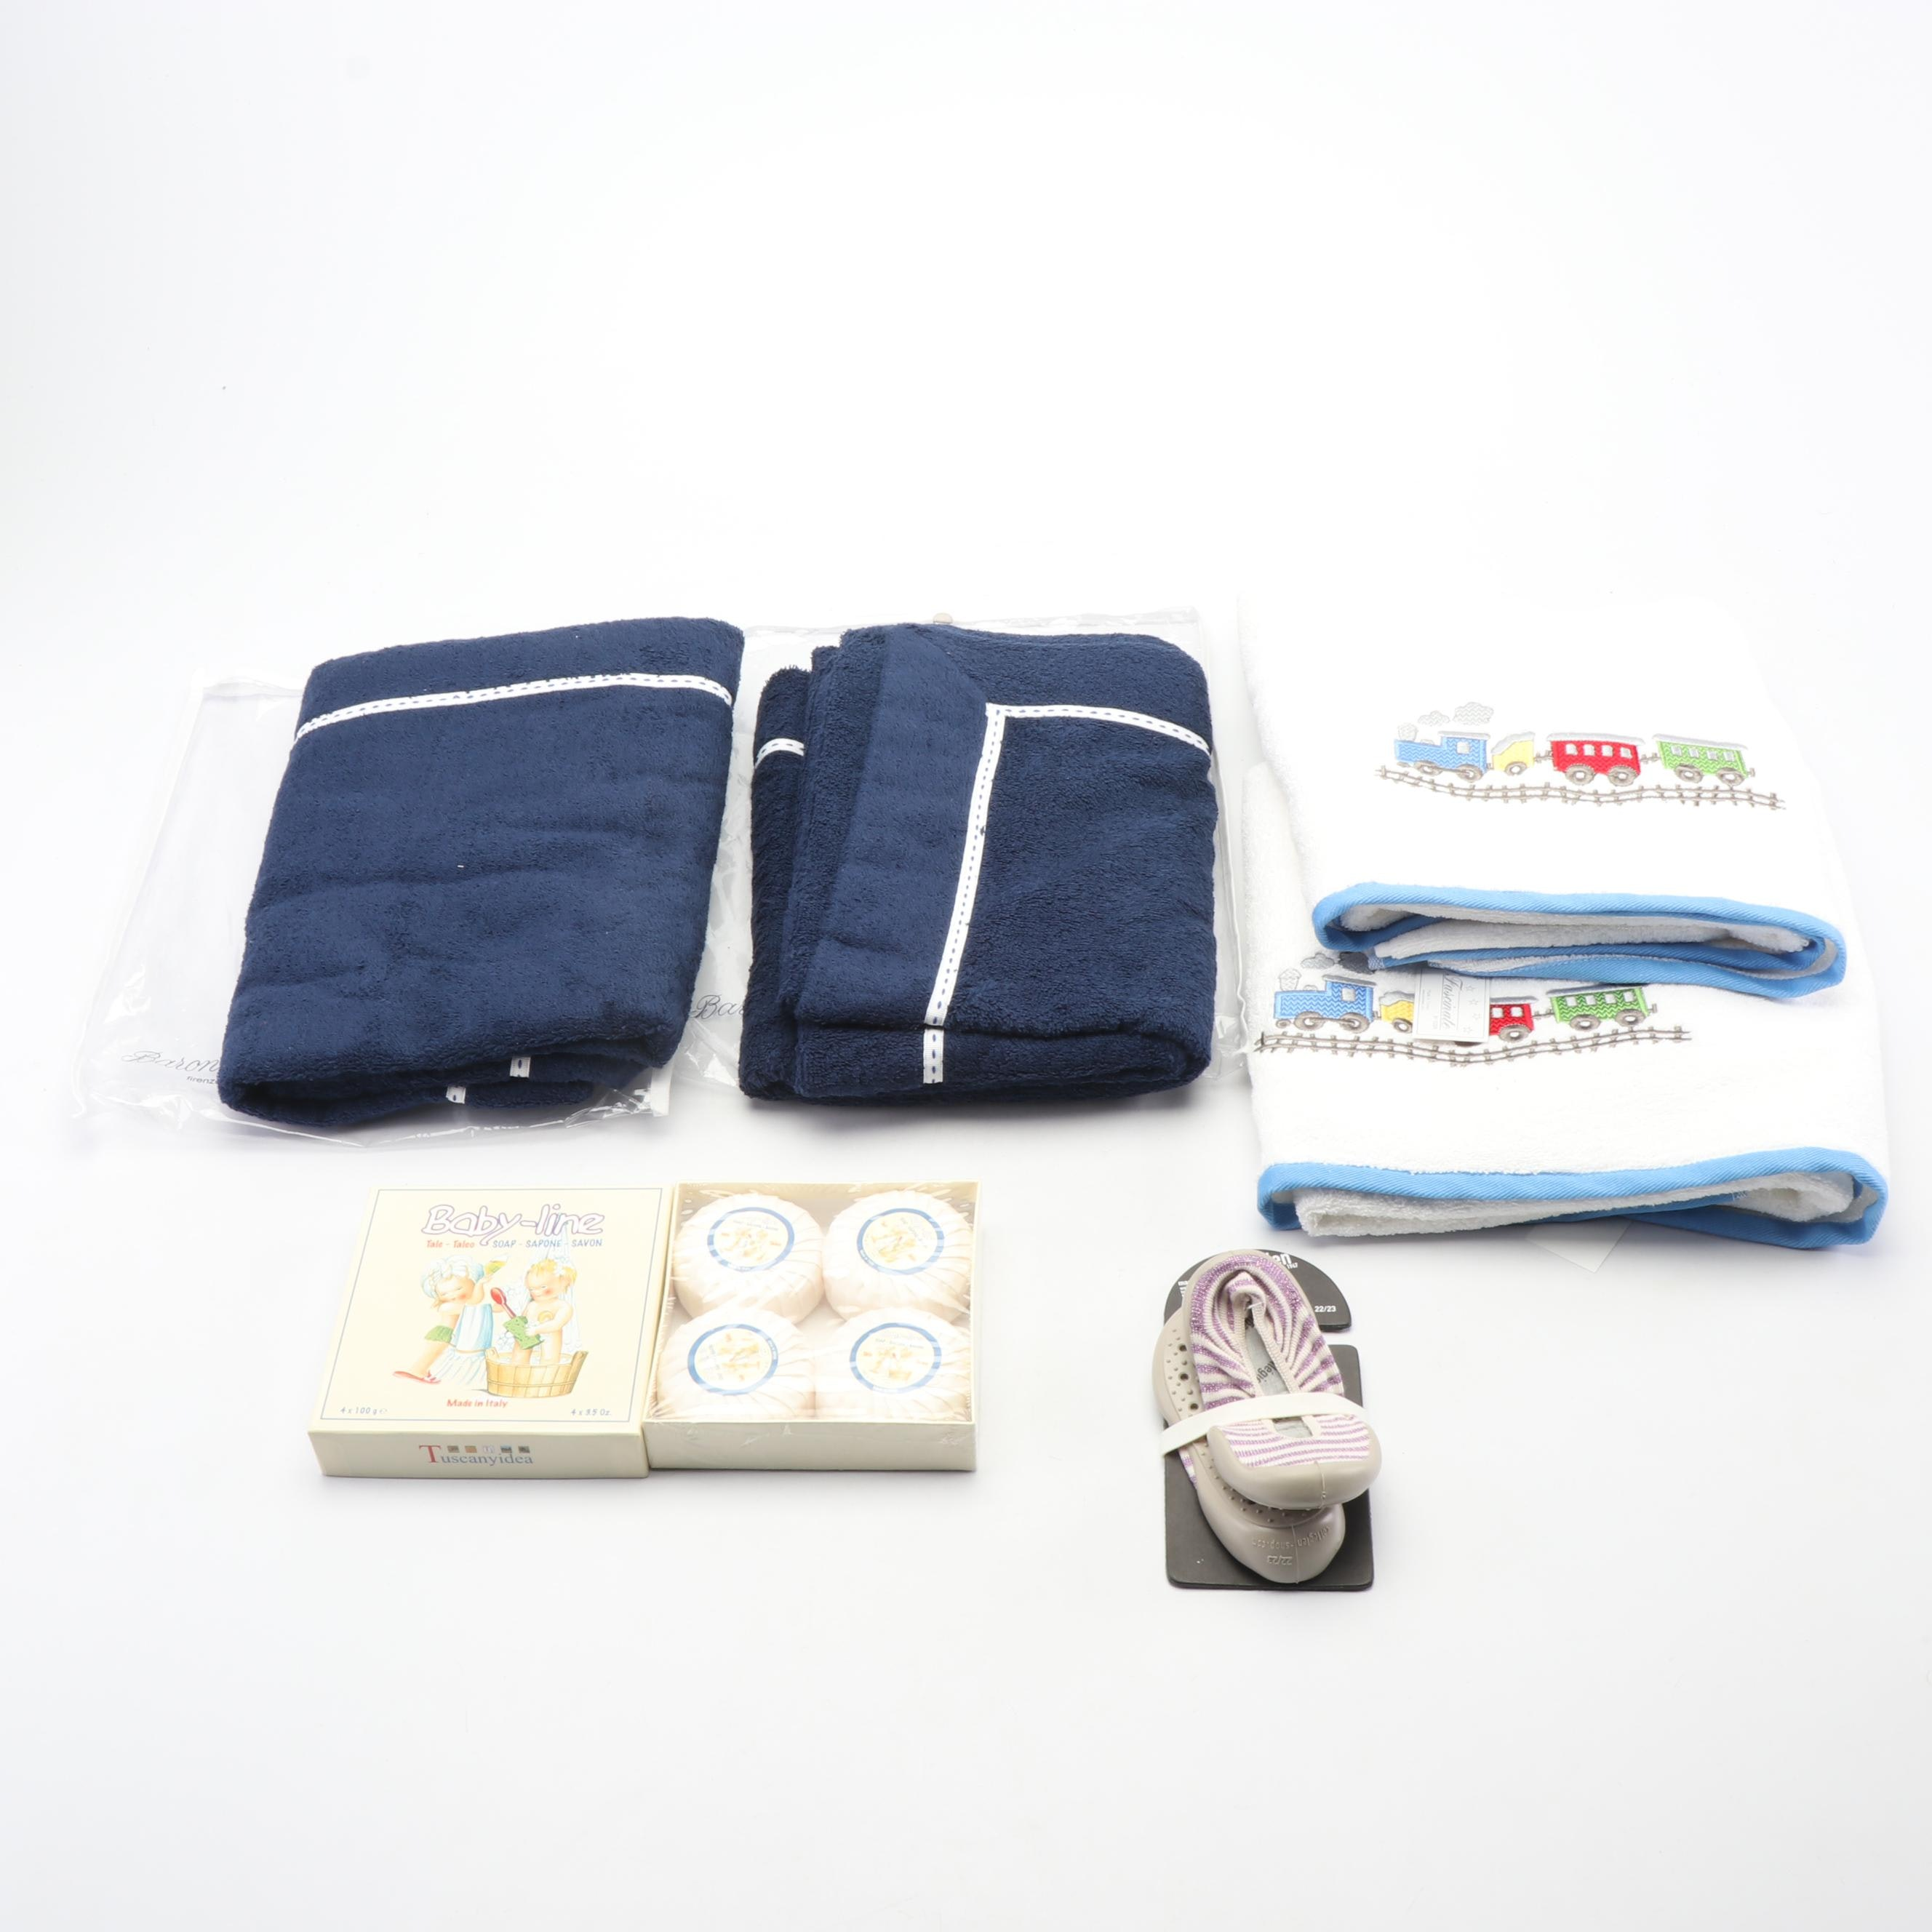 Özer Embroidered Towels, Baby-Line Soap, and Collégien Slippers